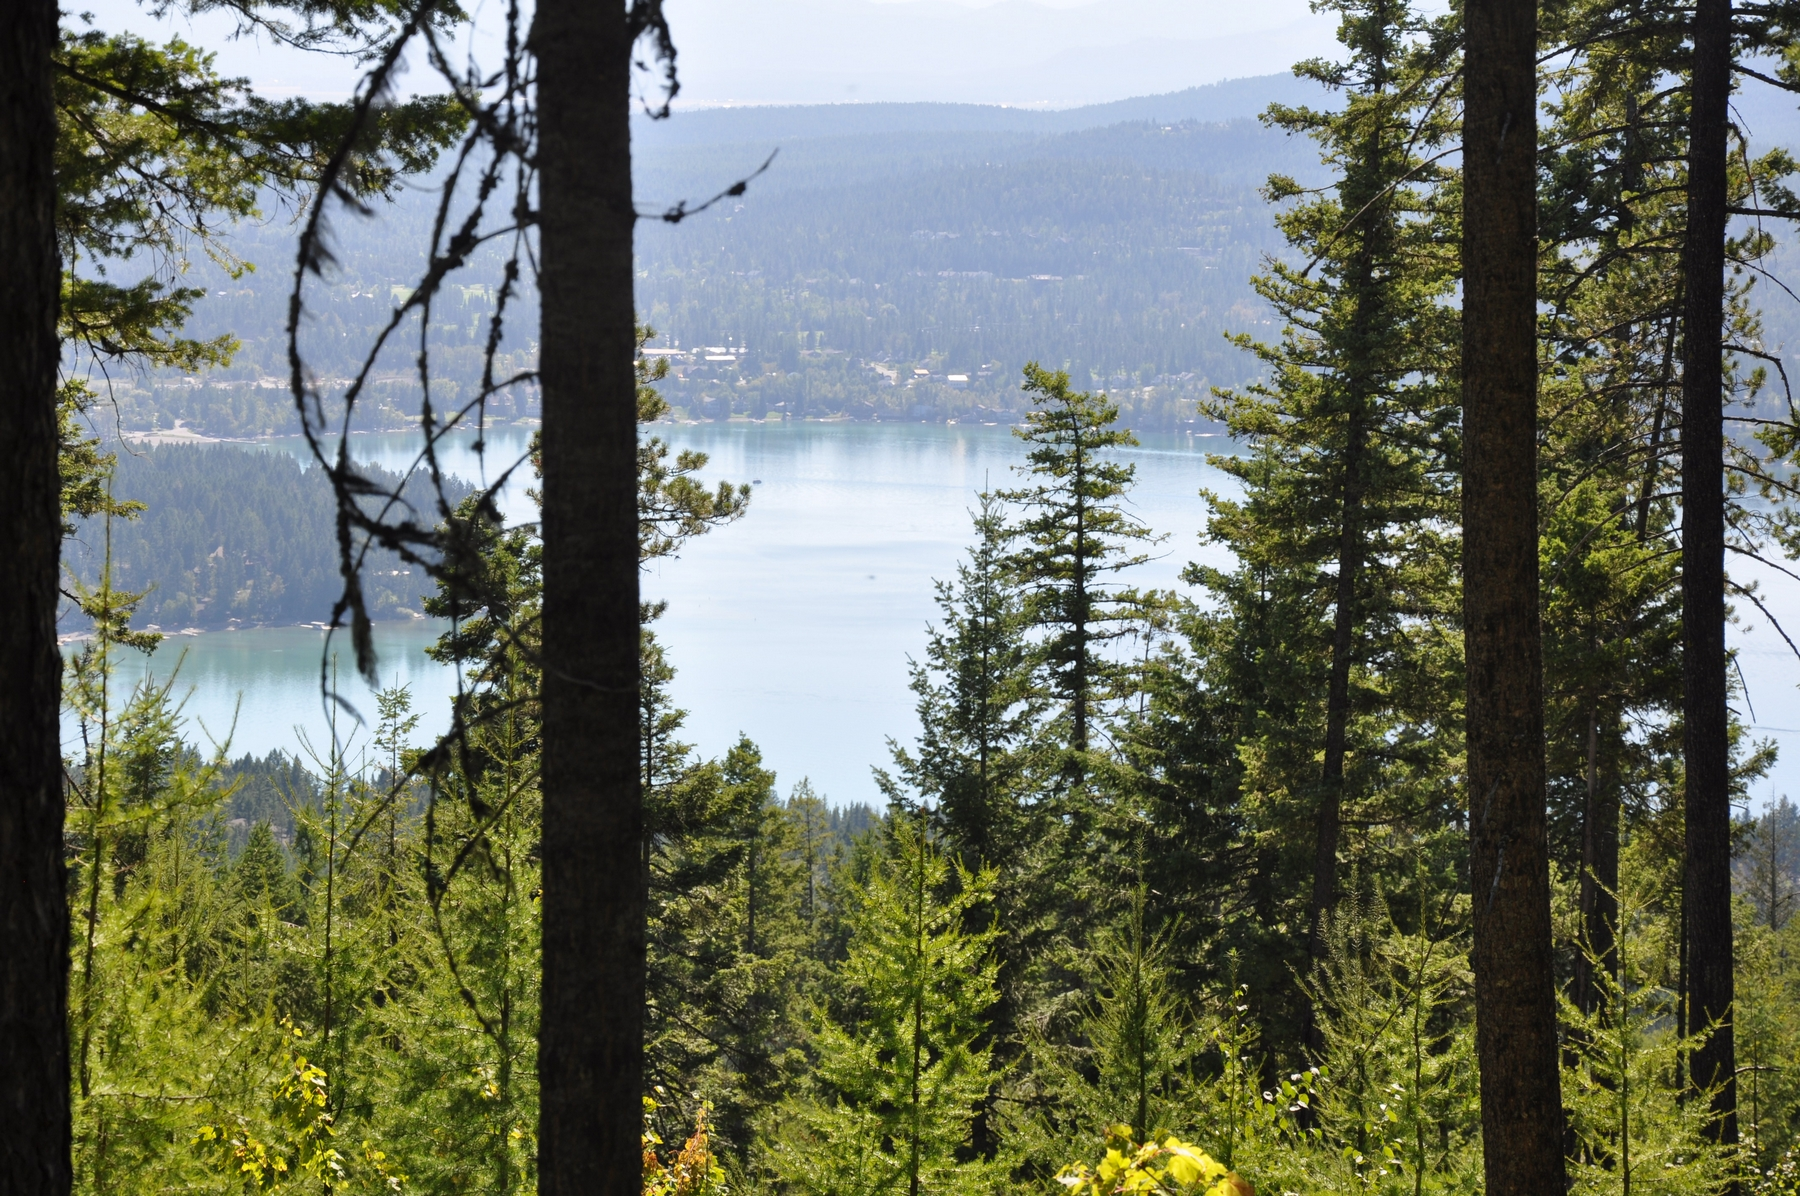 Land for Sale at 238 S Beargrass Cir , Whitefish, MT 59937 Whitefish, Montana, 59937 United States